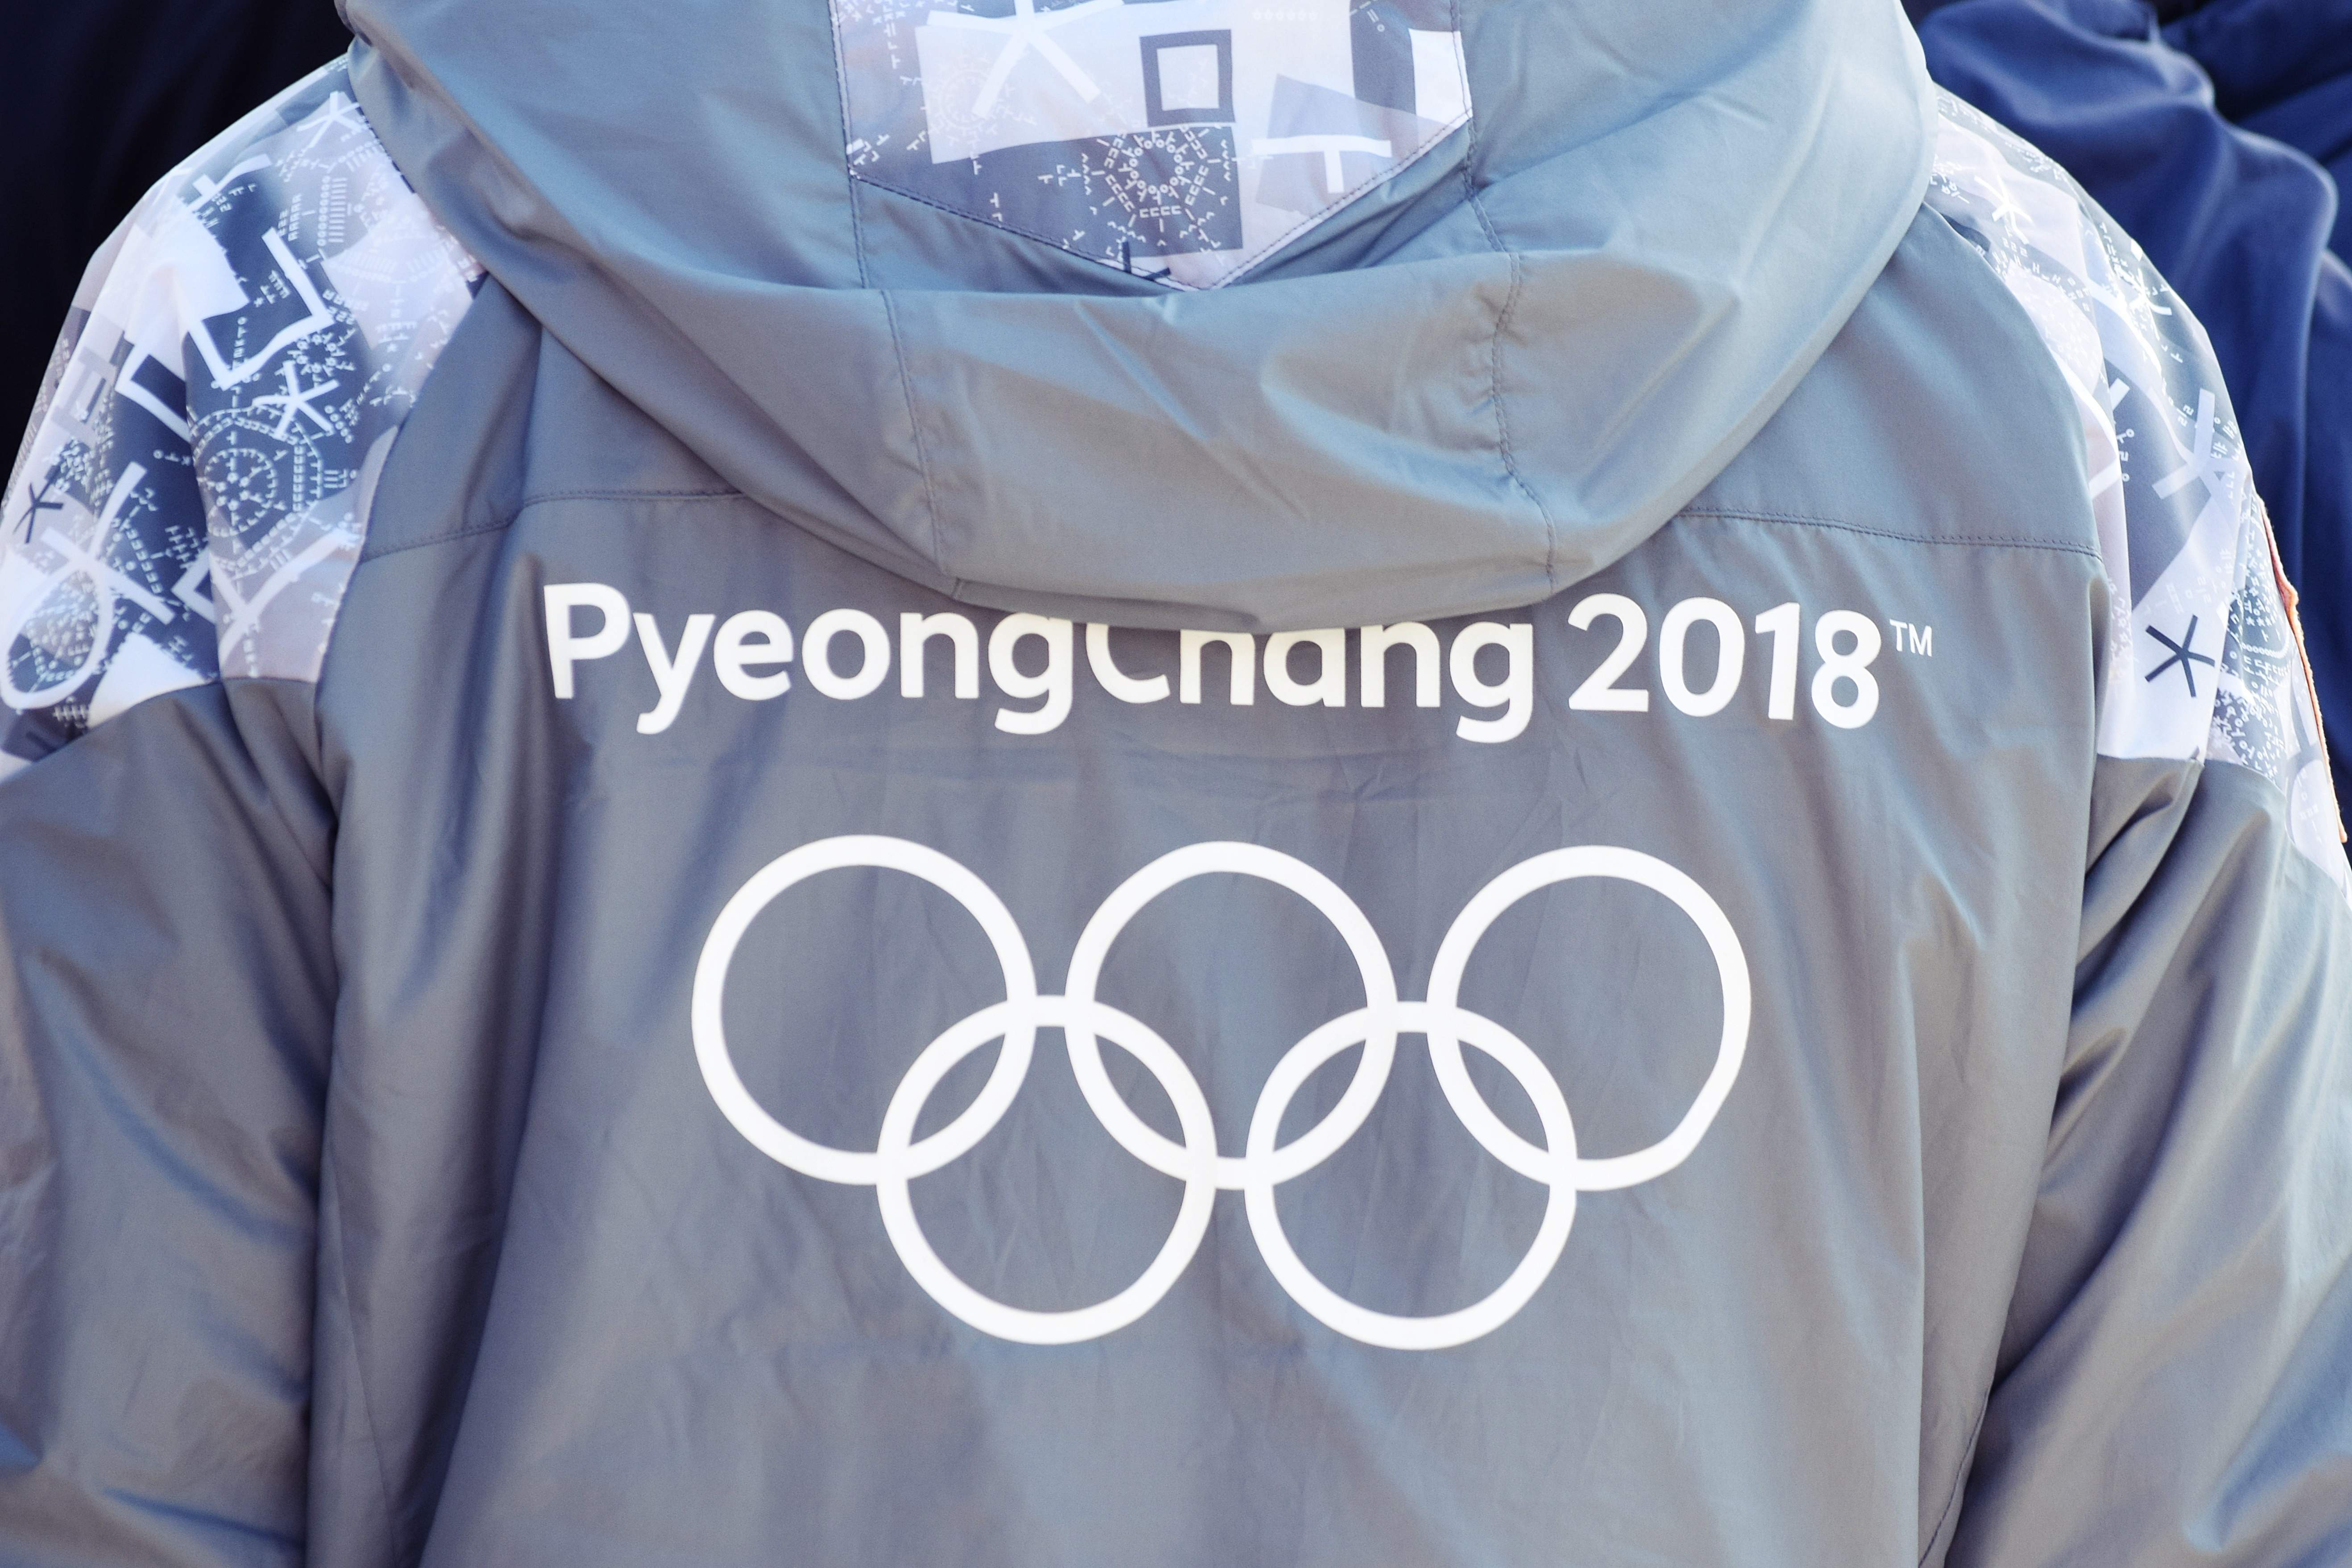 PyeongChang Winter Olympics 2018 - Verdict